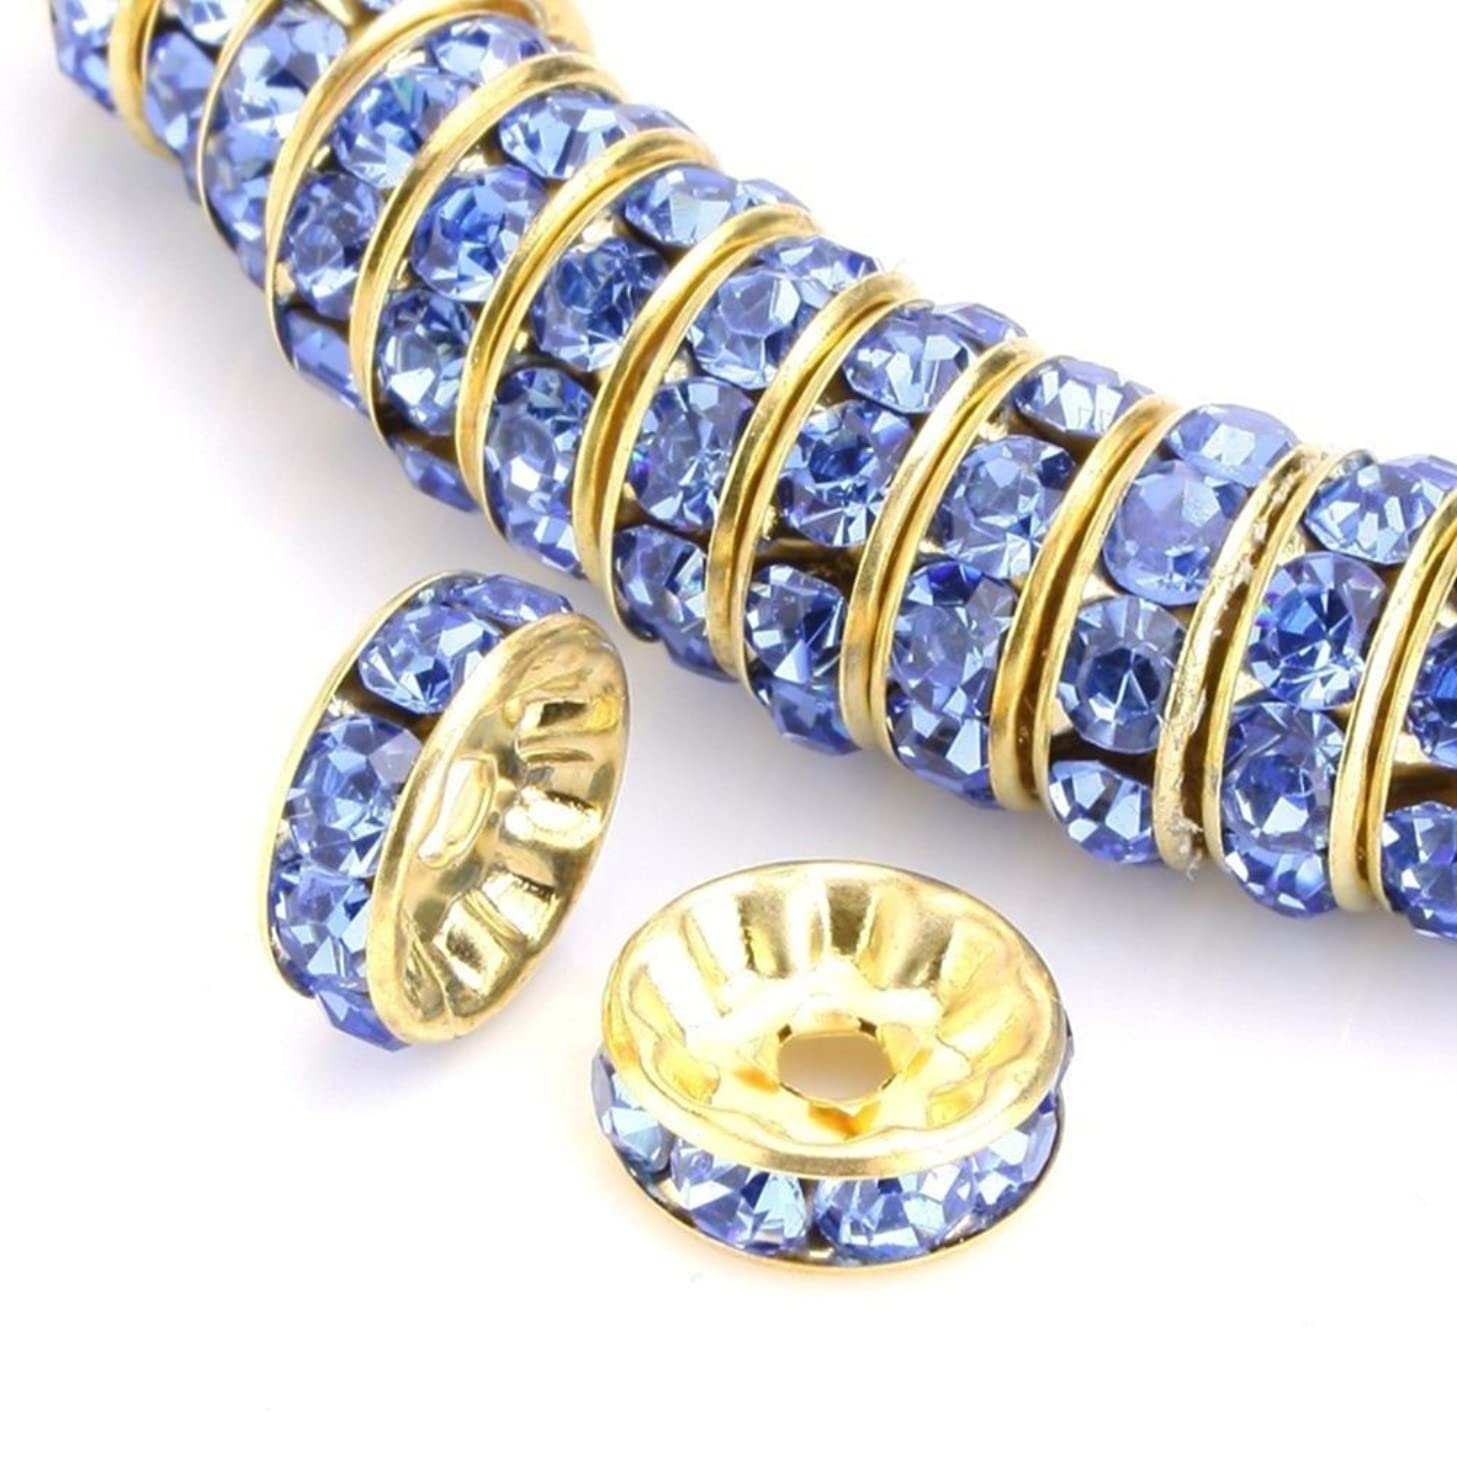 100pcs Best Quality Rondelle Spacer Beads 4mm Jet Black Top Quality Austrian Crystal Rhinestone 14k Gold Plated Copper Brass CF4-423